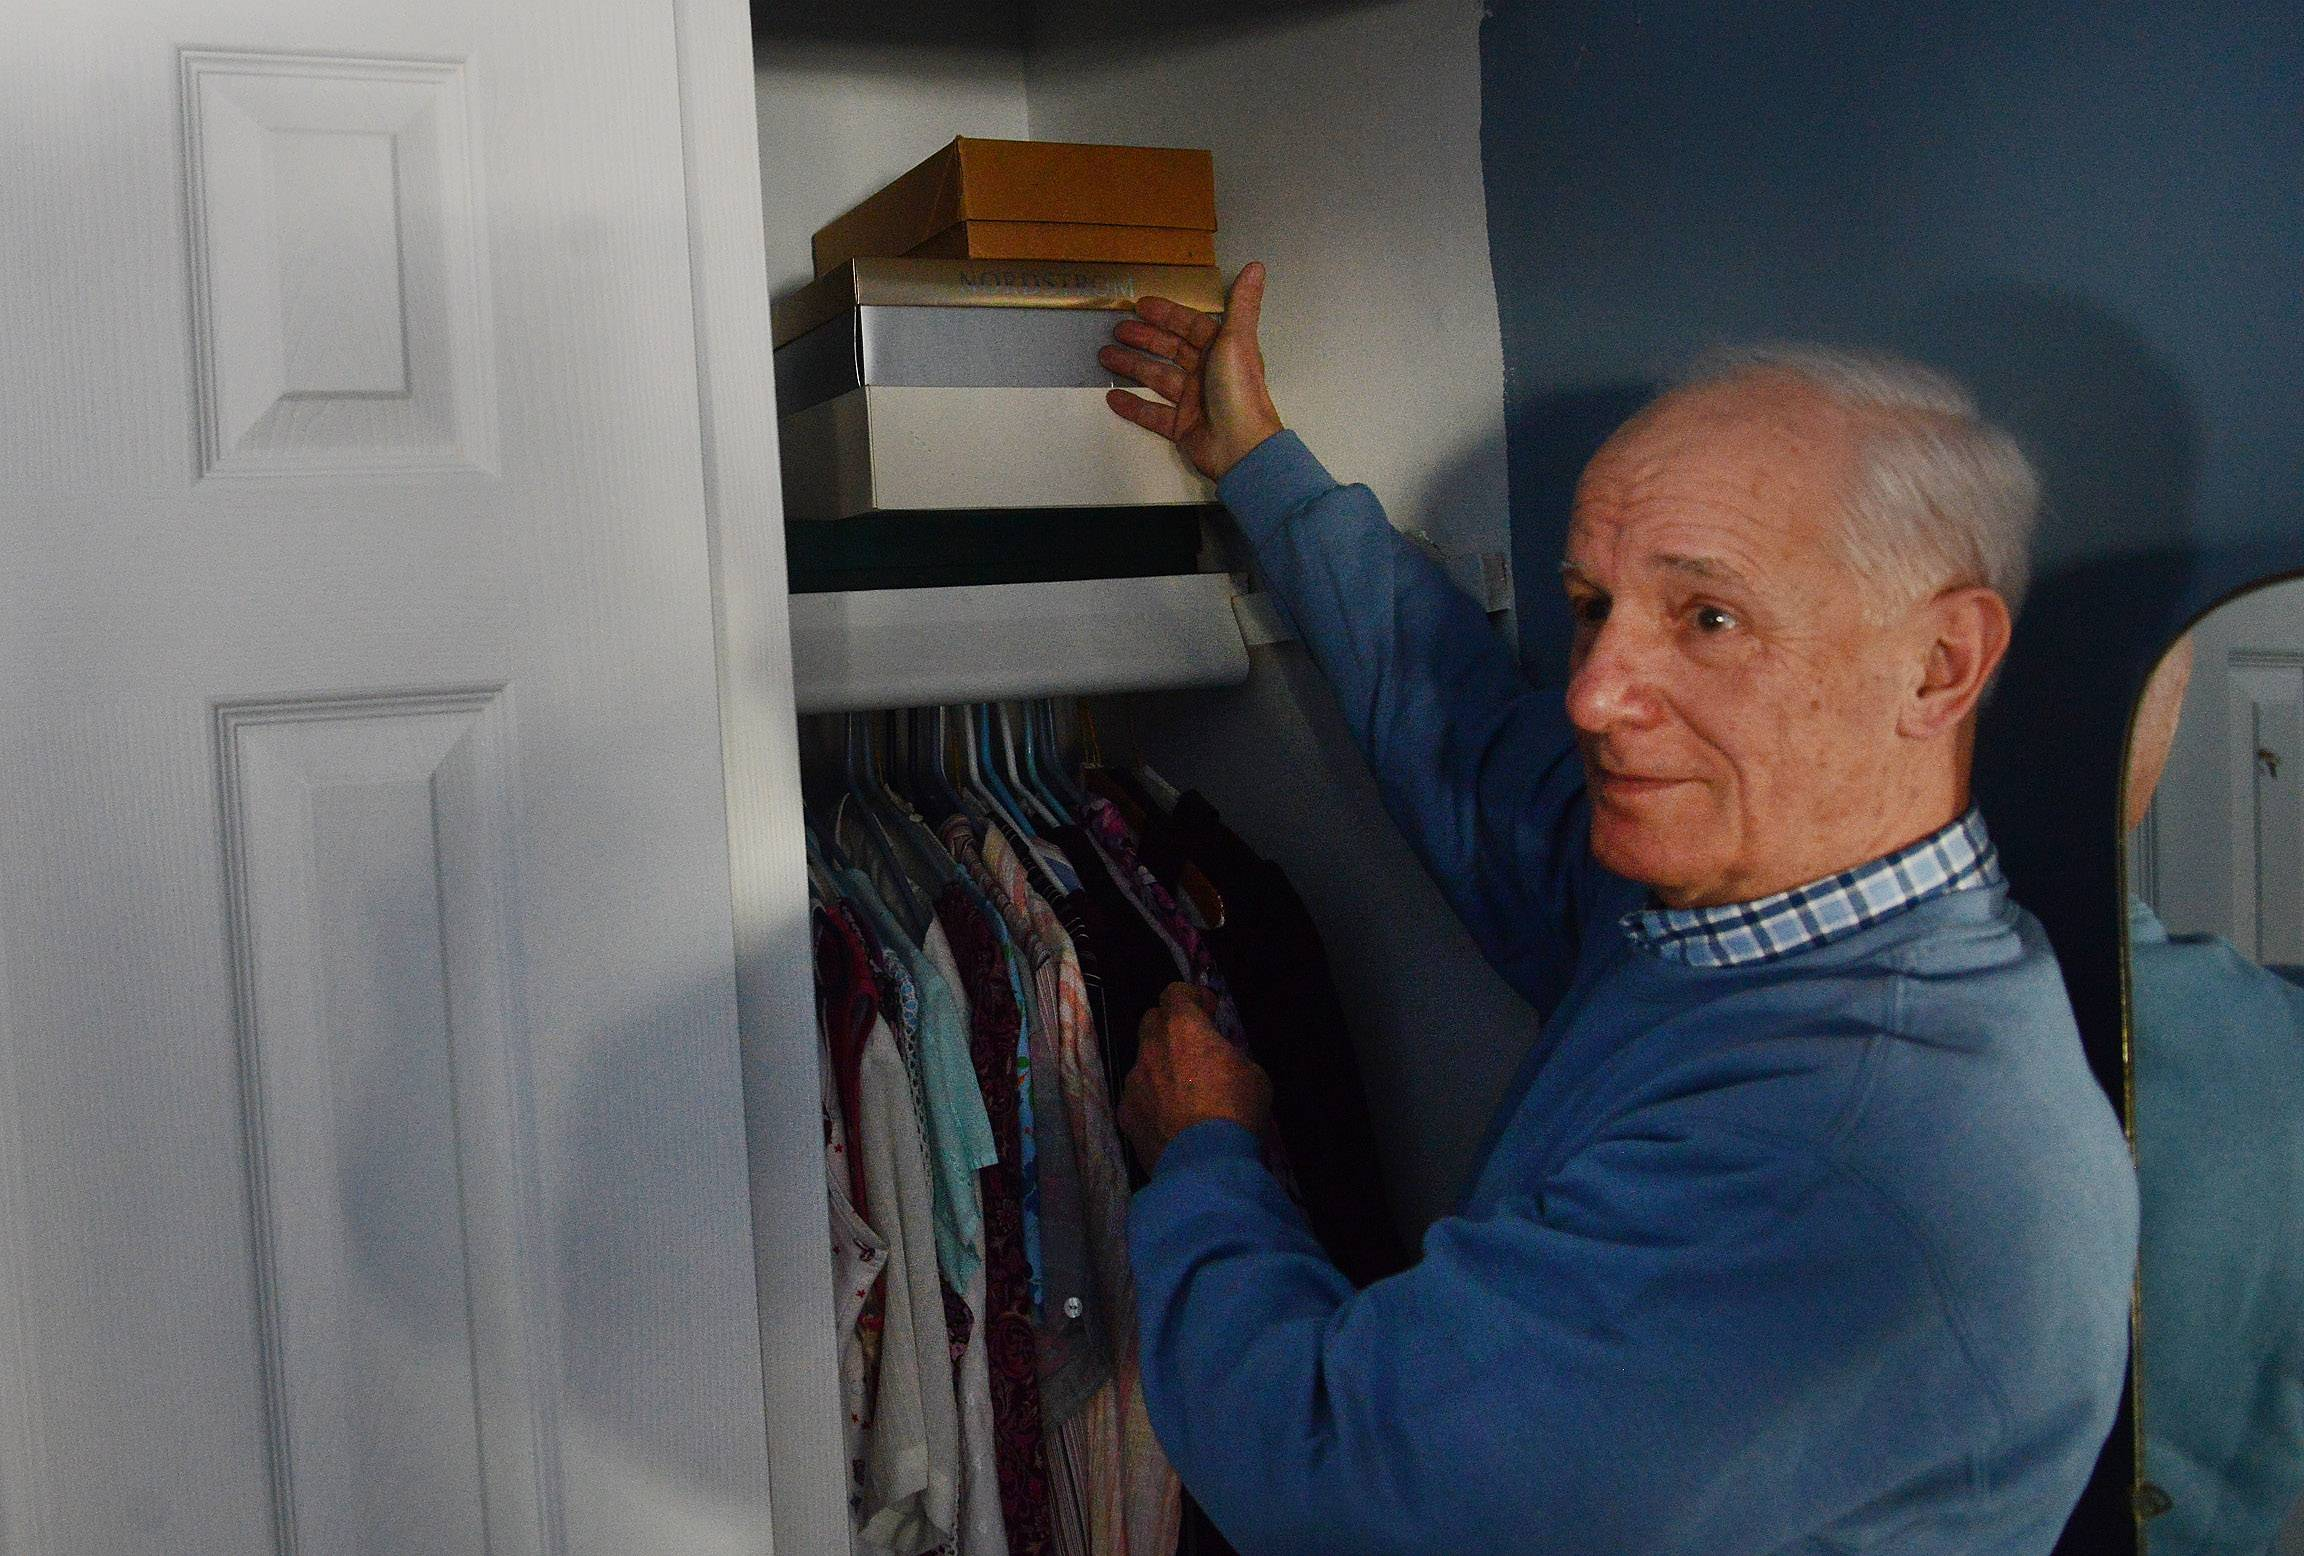 A month after his wife died, a grieving Dennis Depcik found a mysterious box in Maggie's closet in their Buffalo Grove home.